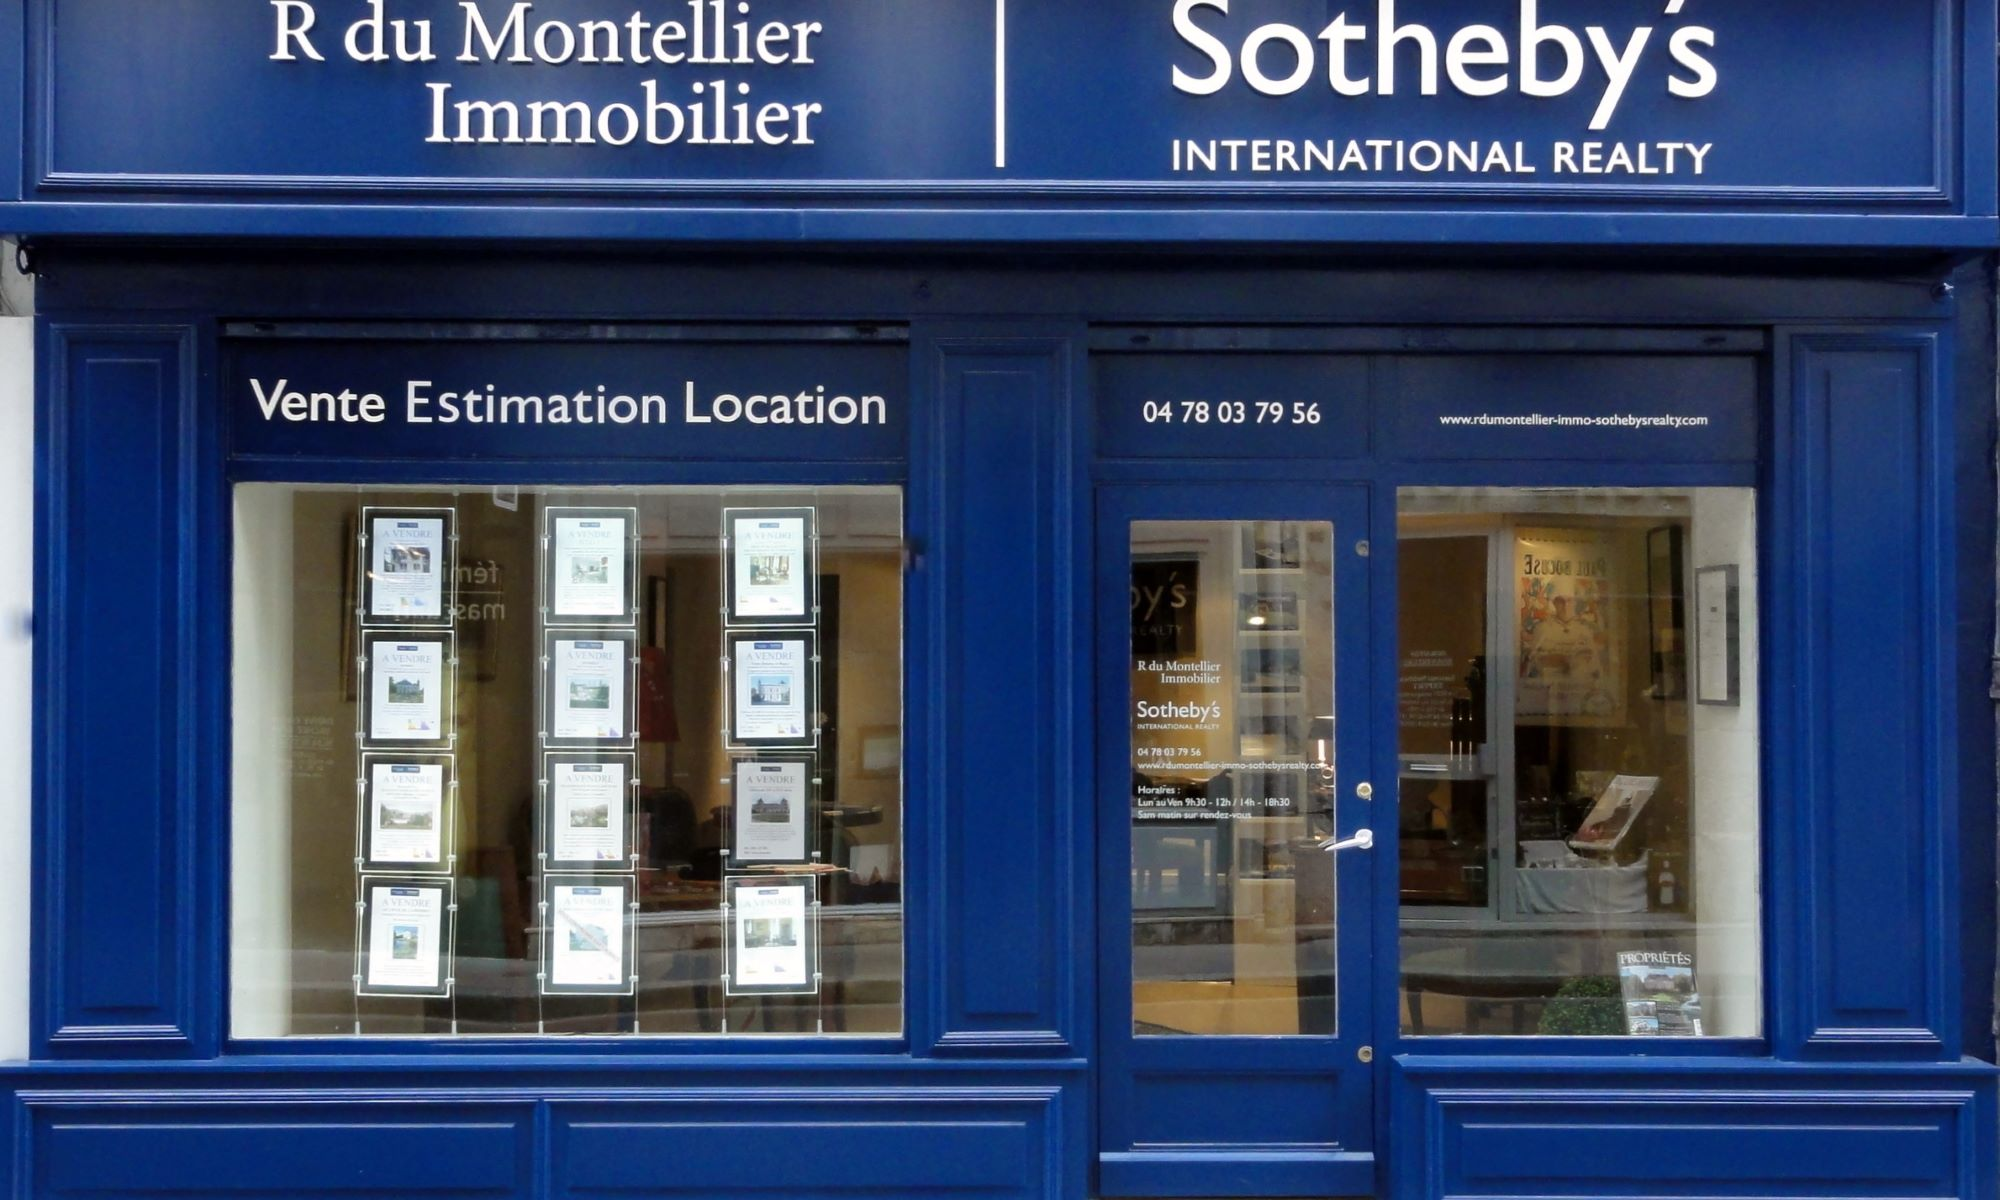 R du Montellier Immobilier Sotheby's International Realty